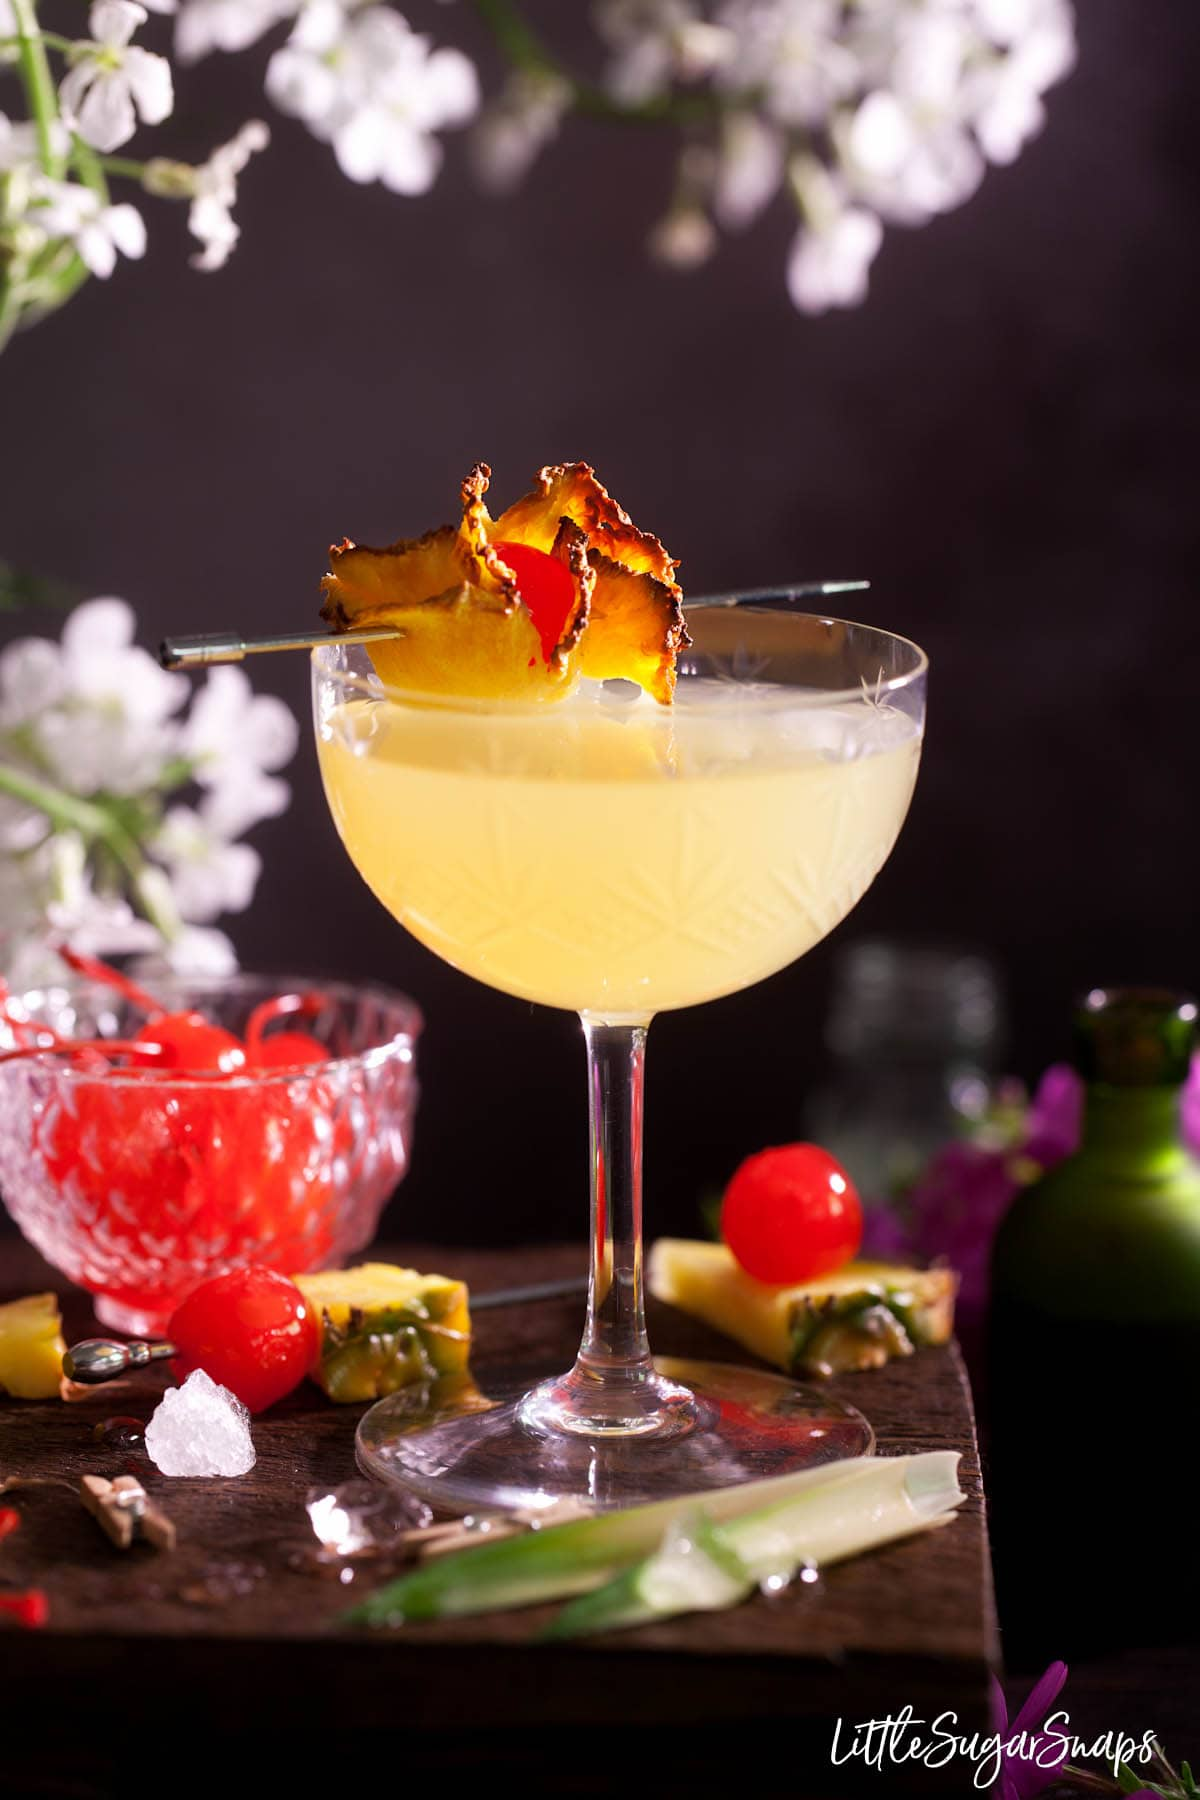 A gin and pineapple cocktail garnished with dried pineapple and maraschino cherry.